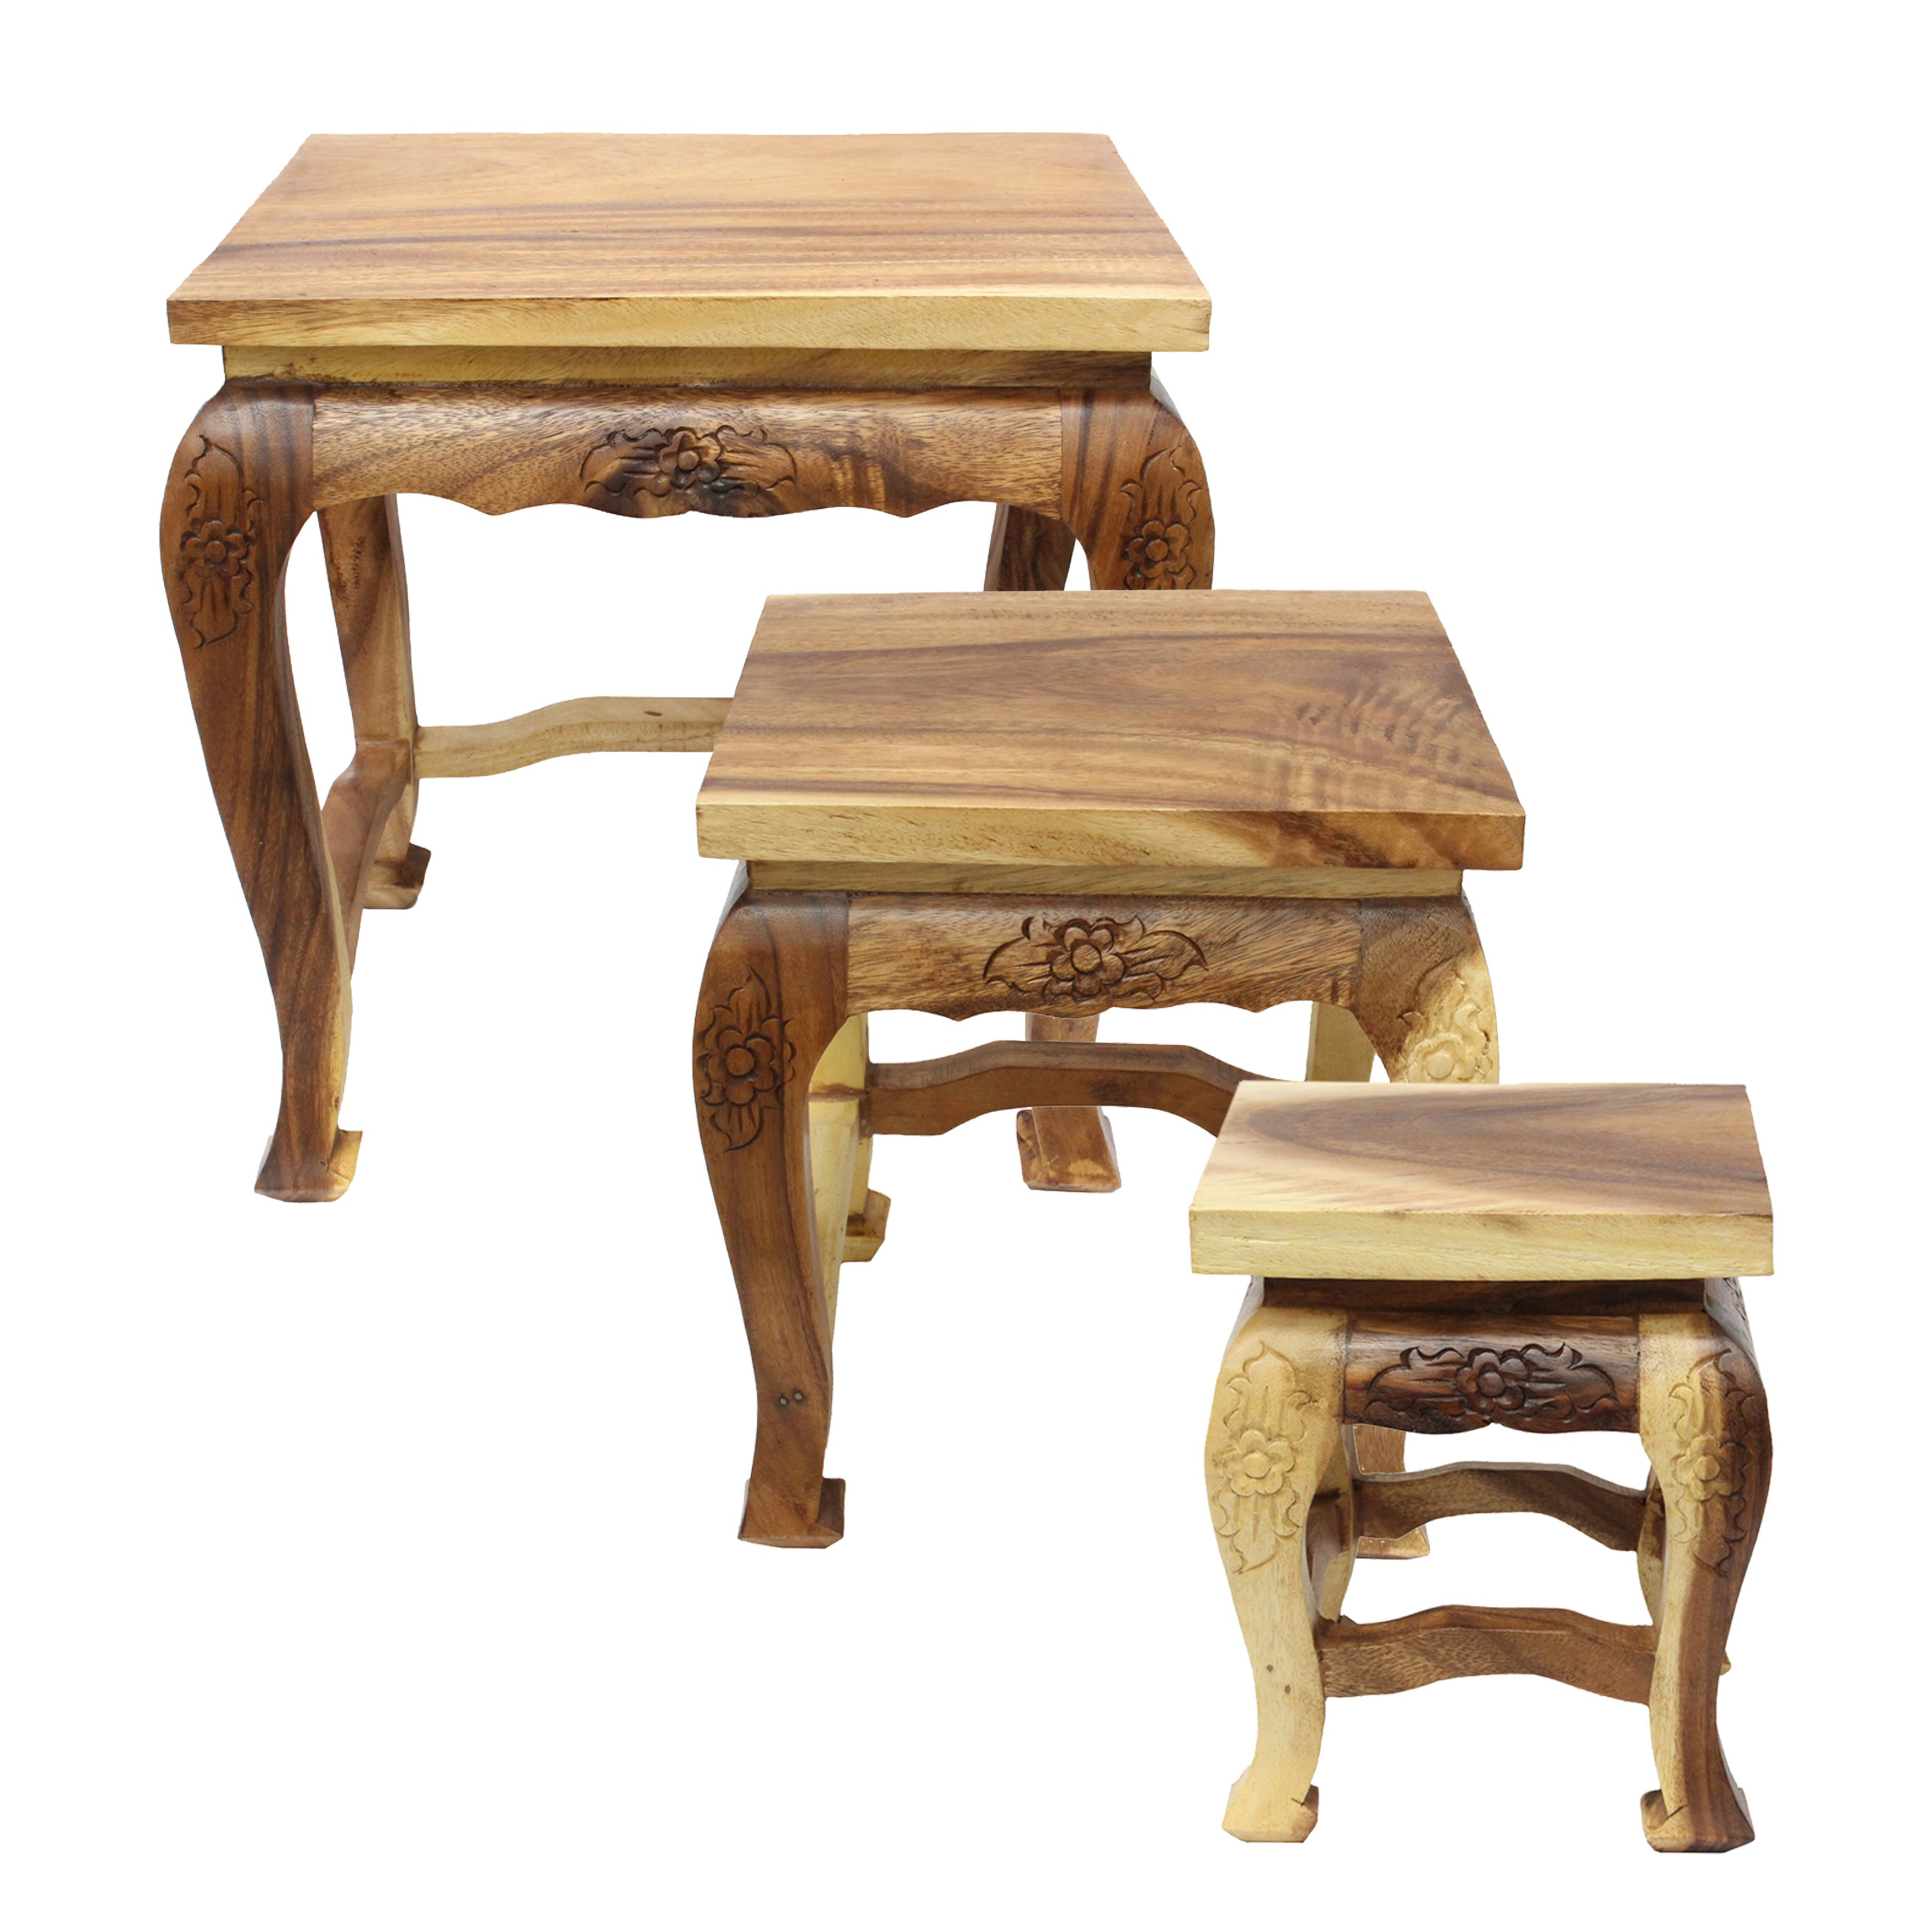 opium hocker holzhocker beistelltisch nachttisch blumenhocker holz barock massiv ebay. Black Bedroom Furniture Sets. Home Design Ideas